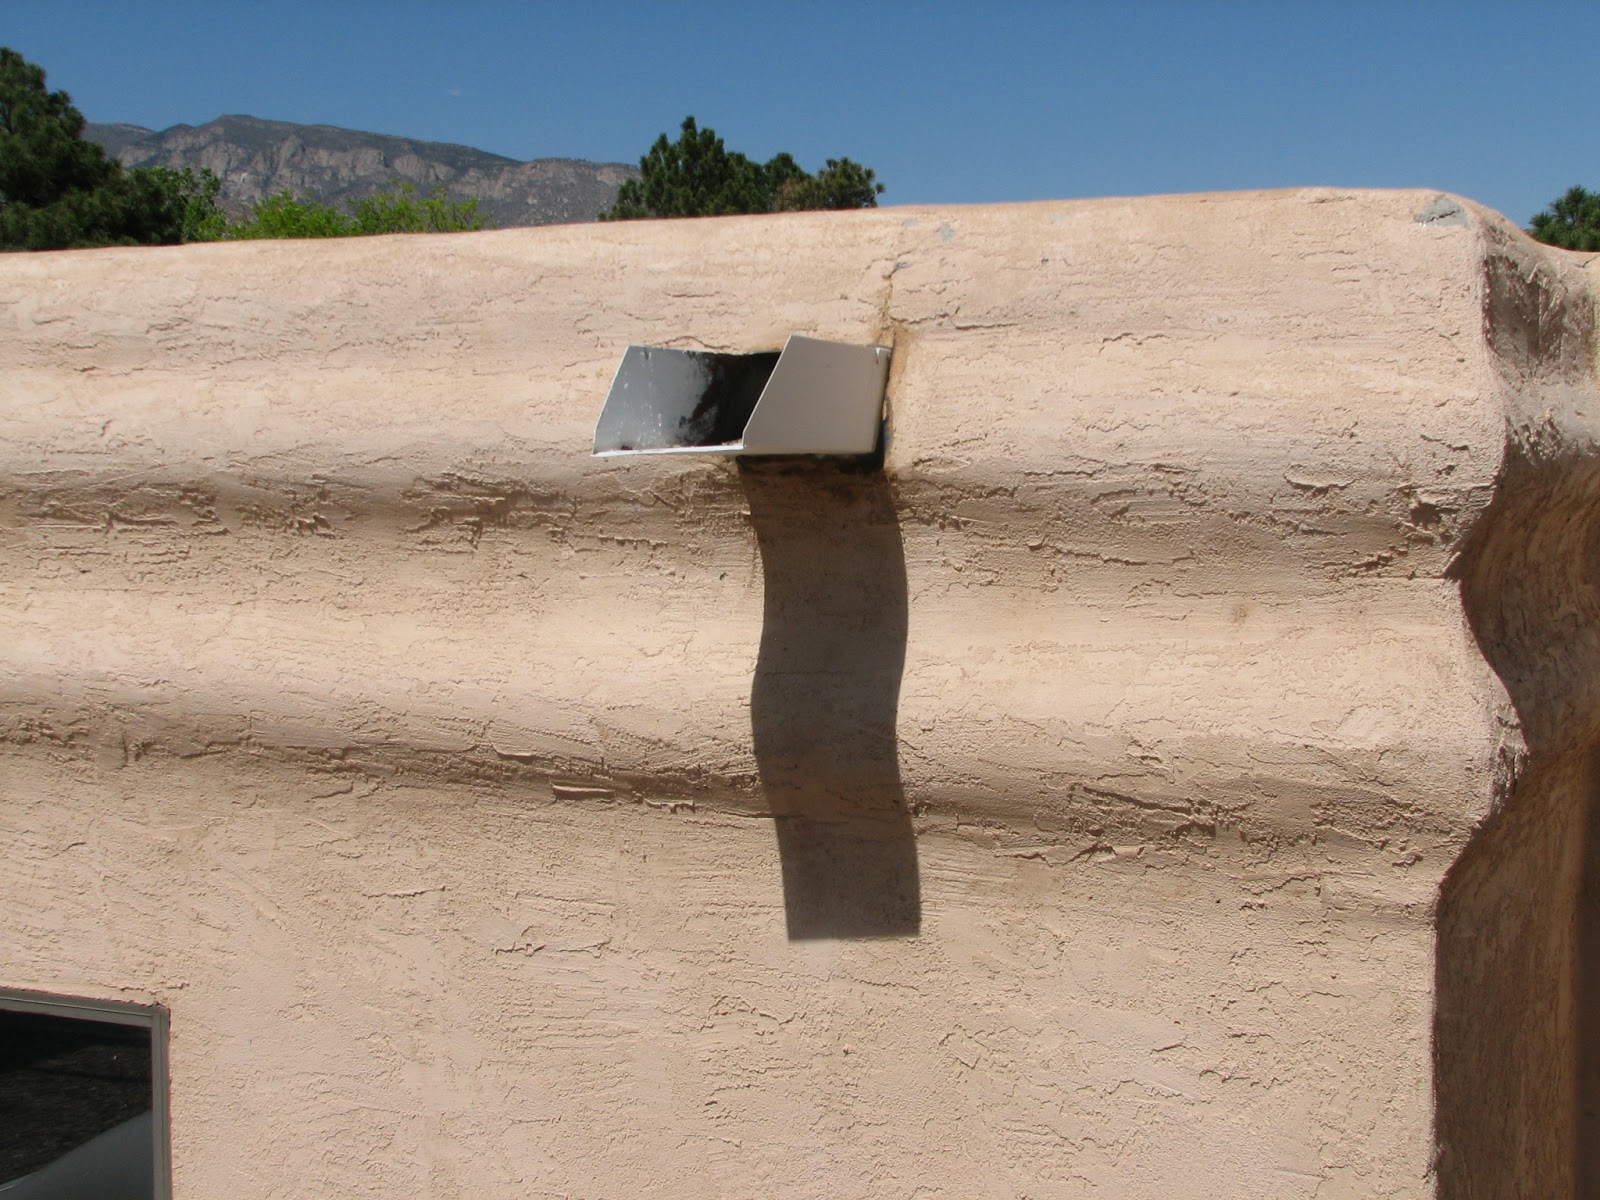 Water Drain Roof Roof to Let Water Drain